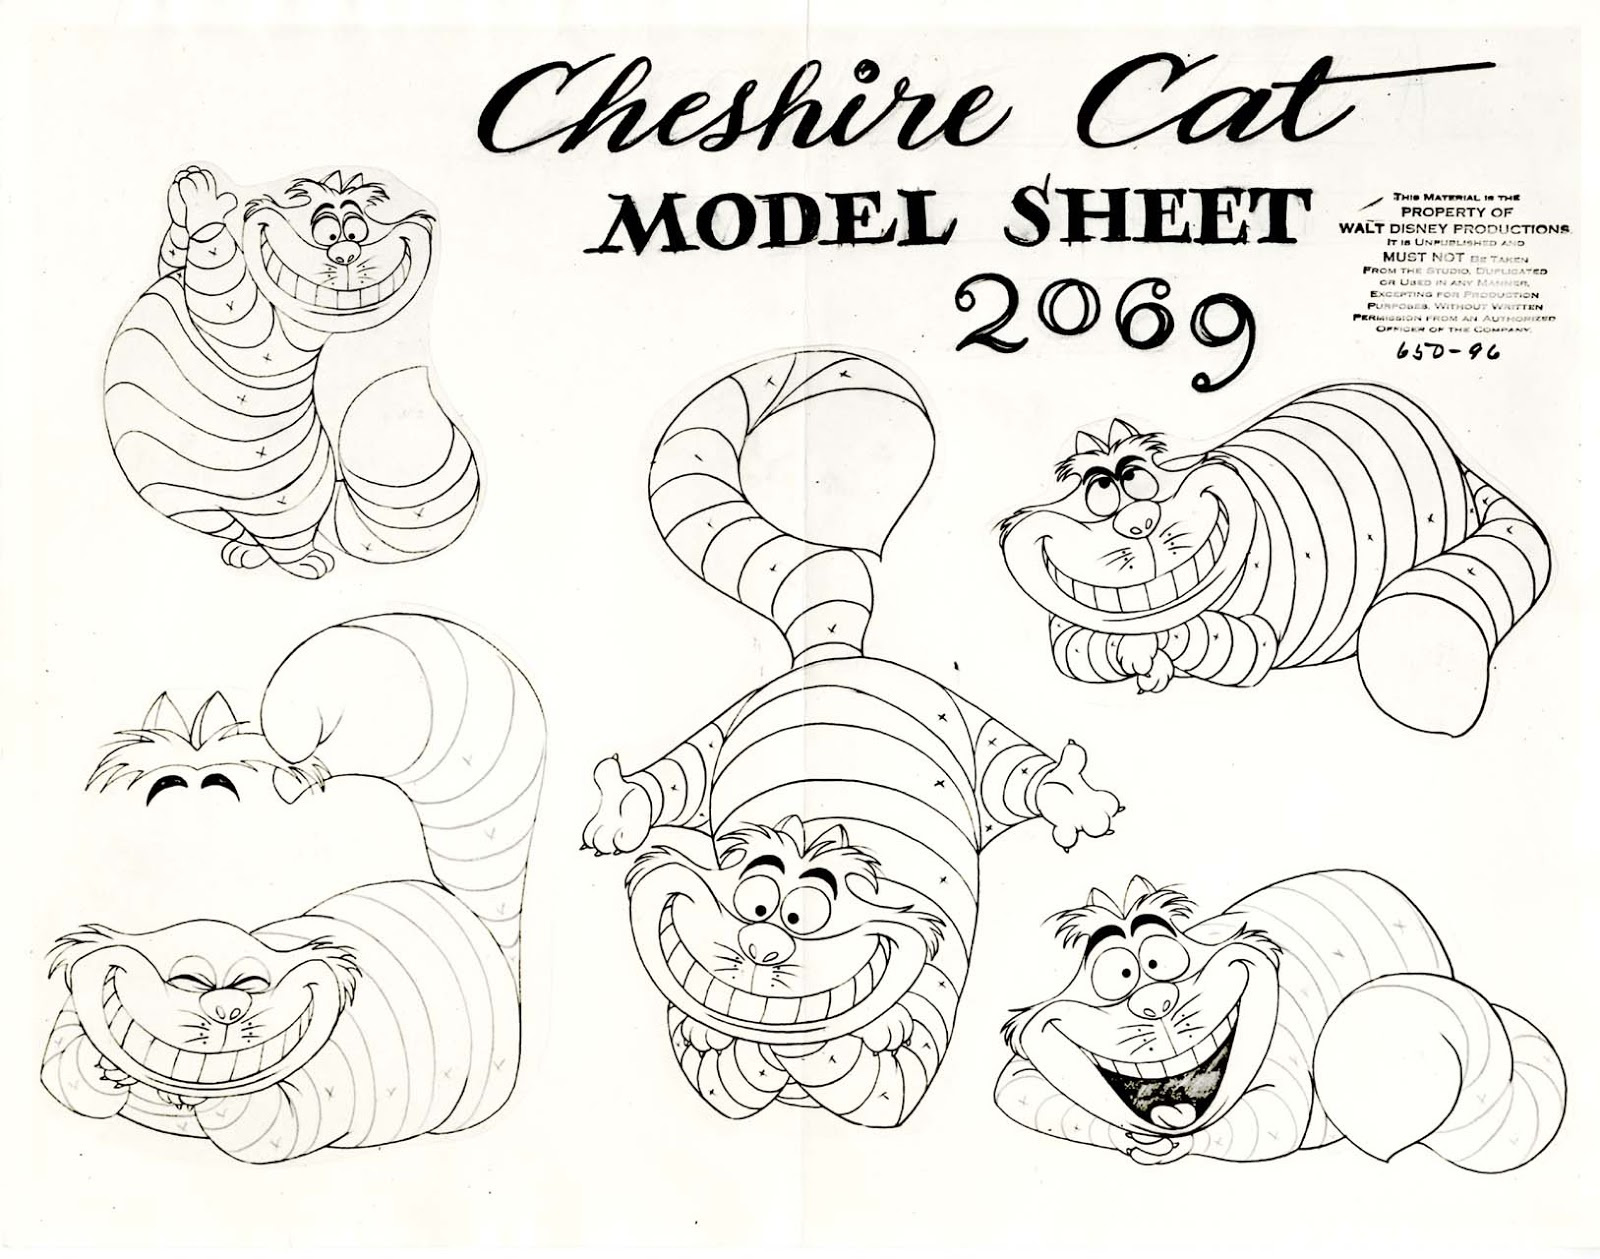 Image Model Sheet Cheshire Cat Jpg Disney Wiki Fandom Cheshire Cat Coloring Pages